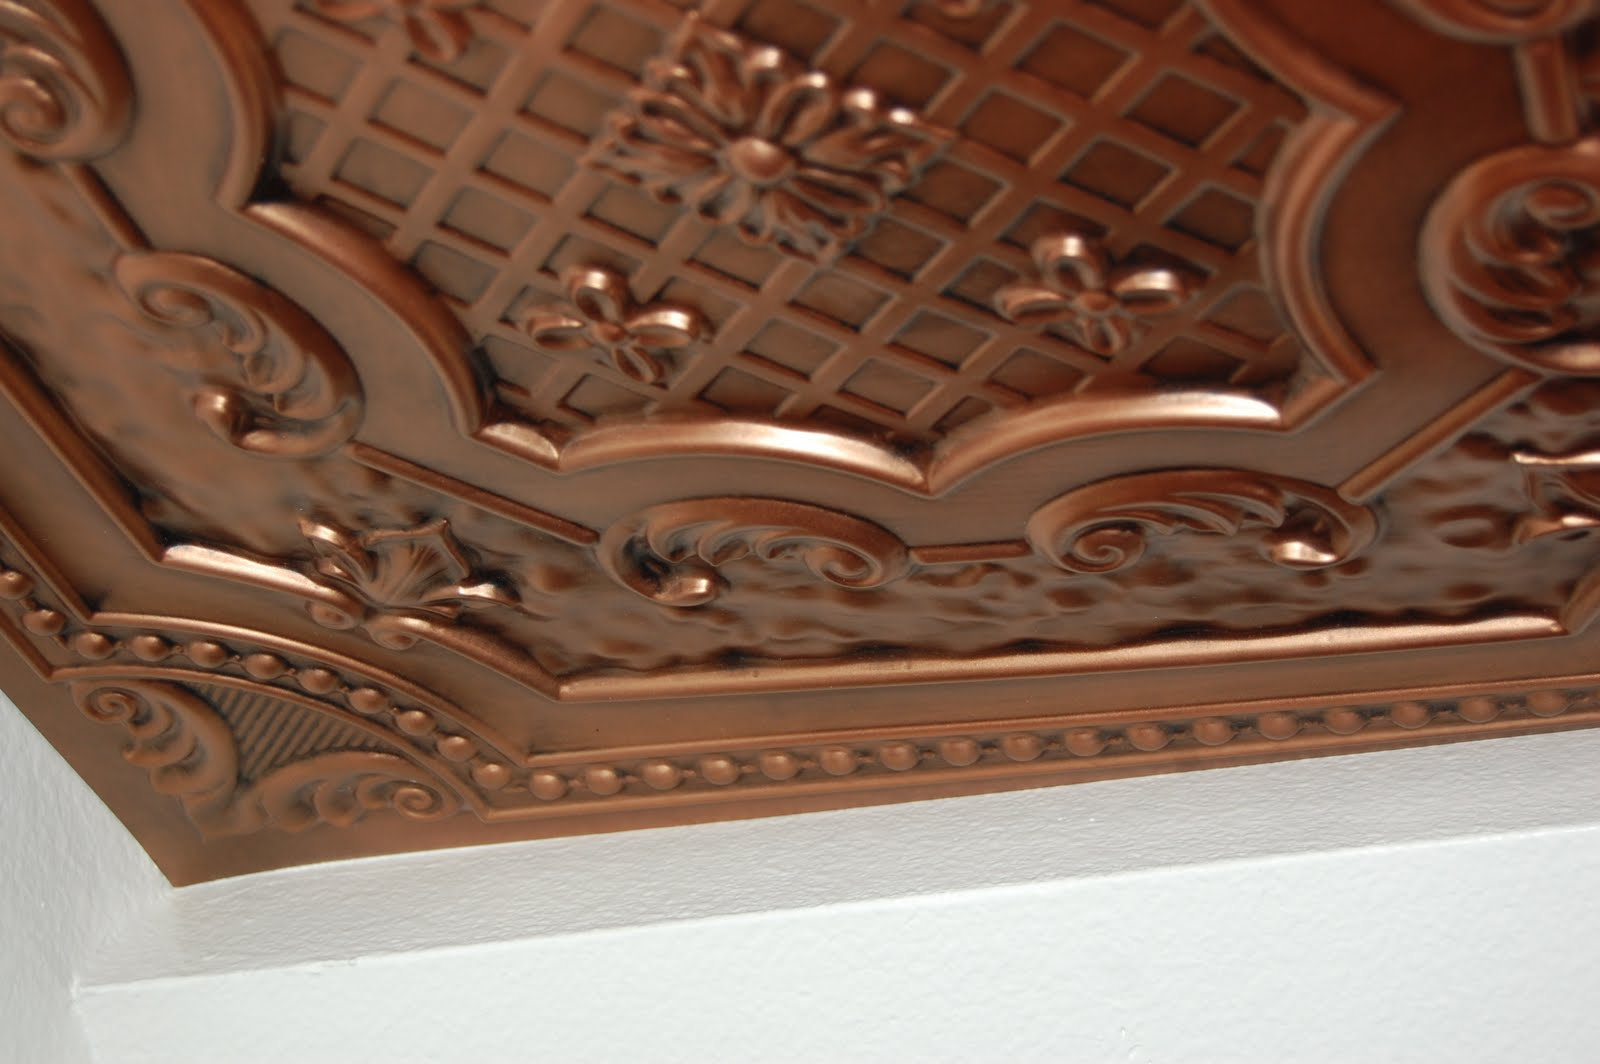 decorative ceiling tile review - Decorative Ceiling Tiles